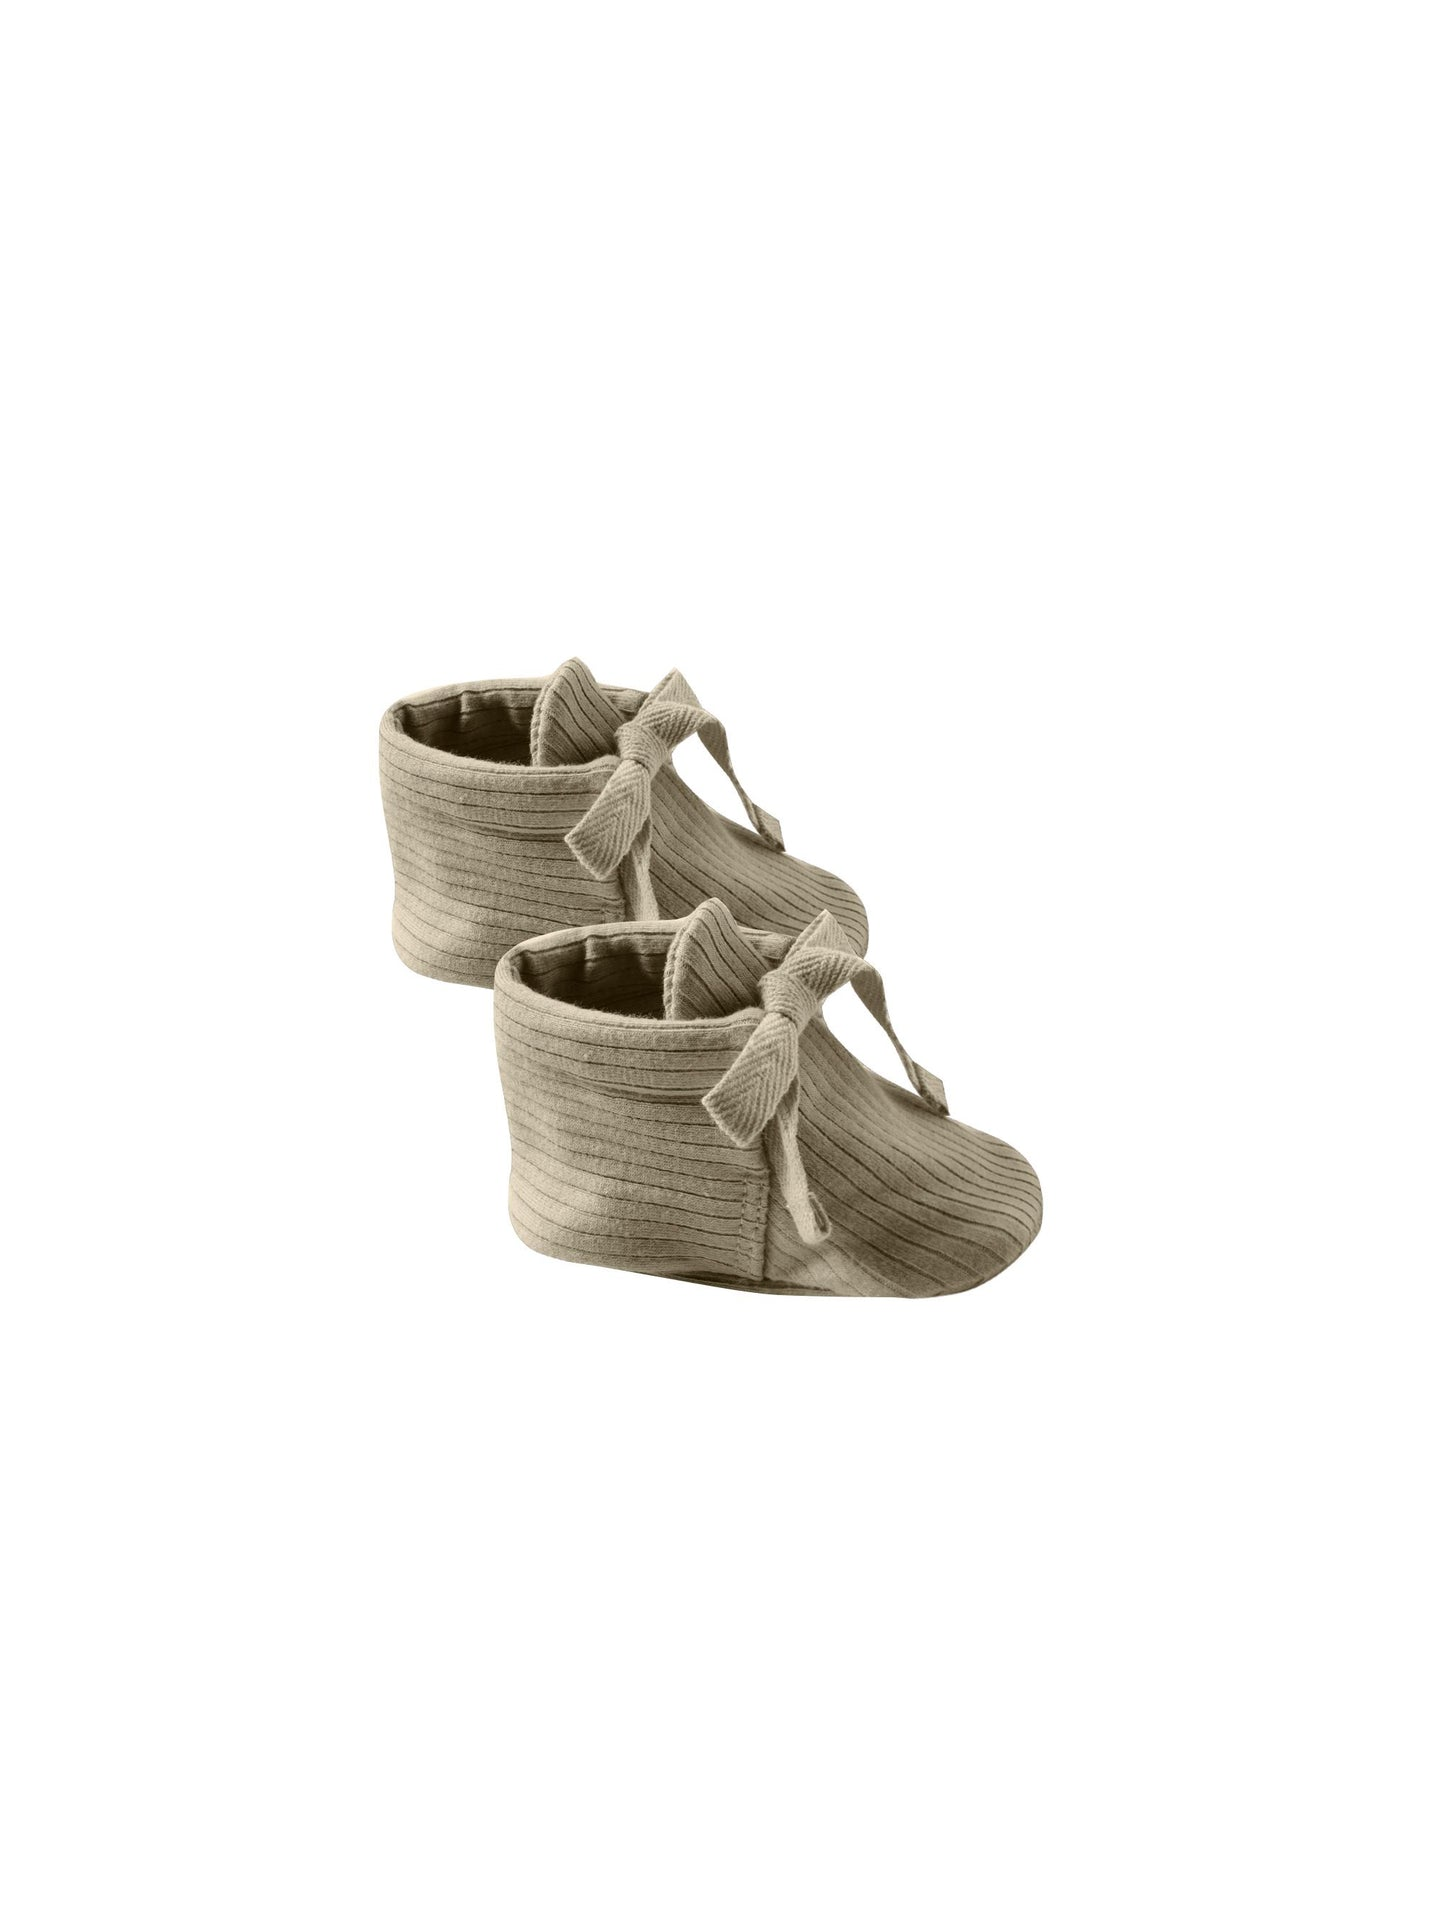 Ribbed Baby Booties - Olive